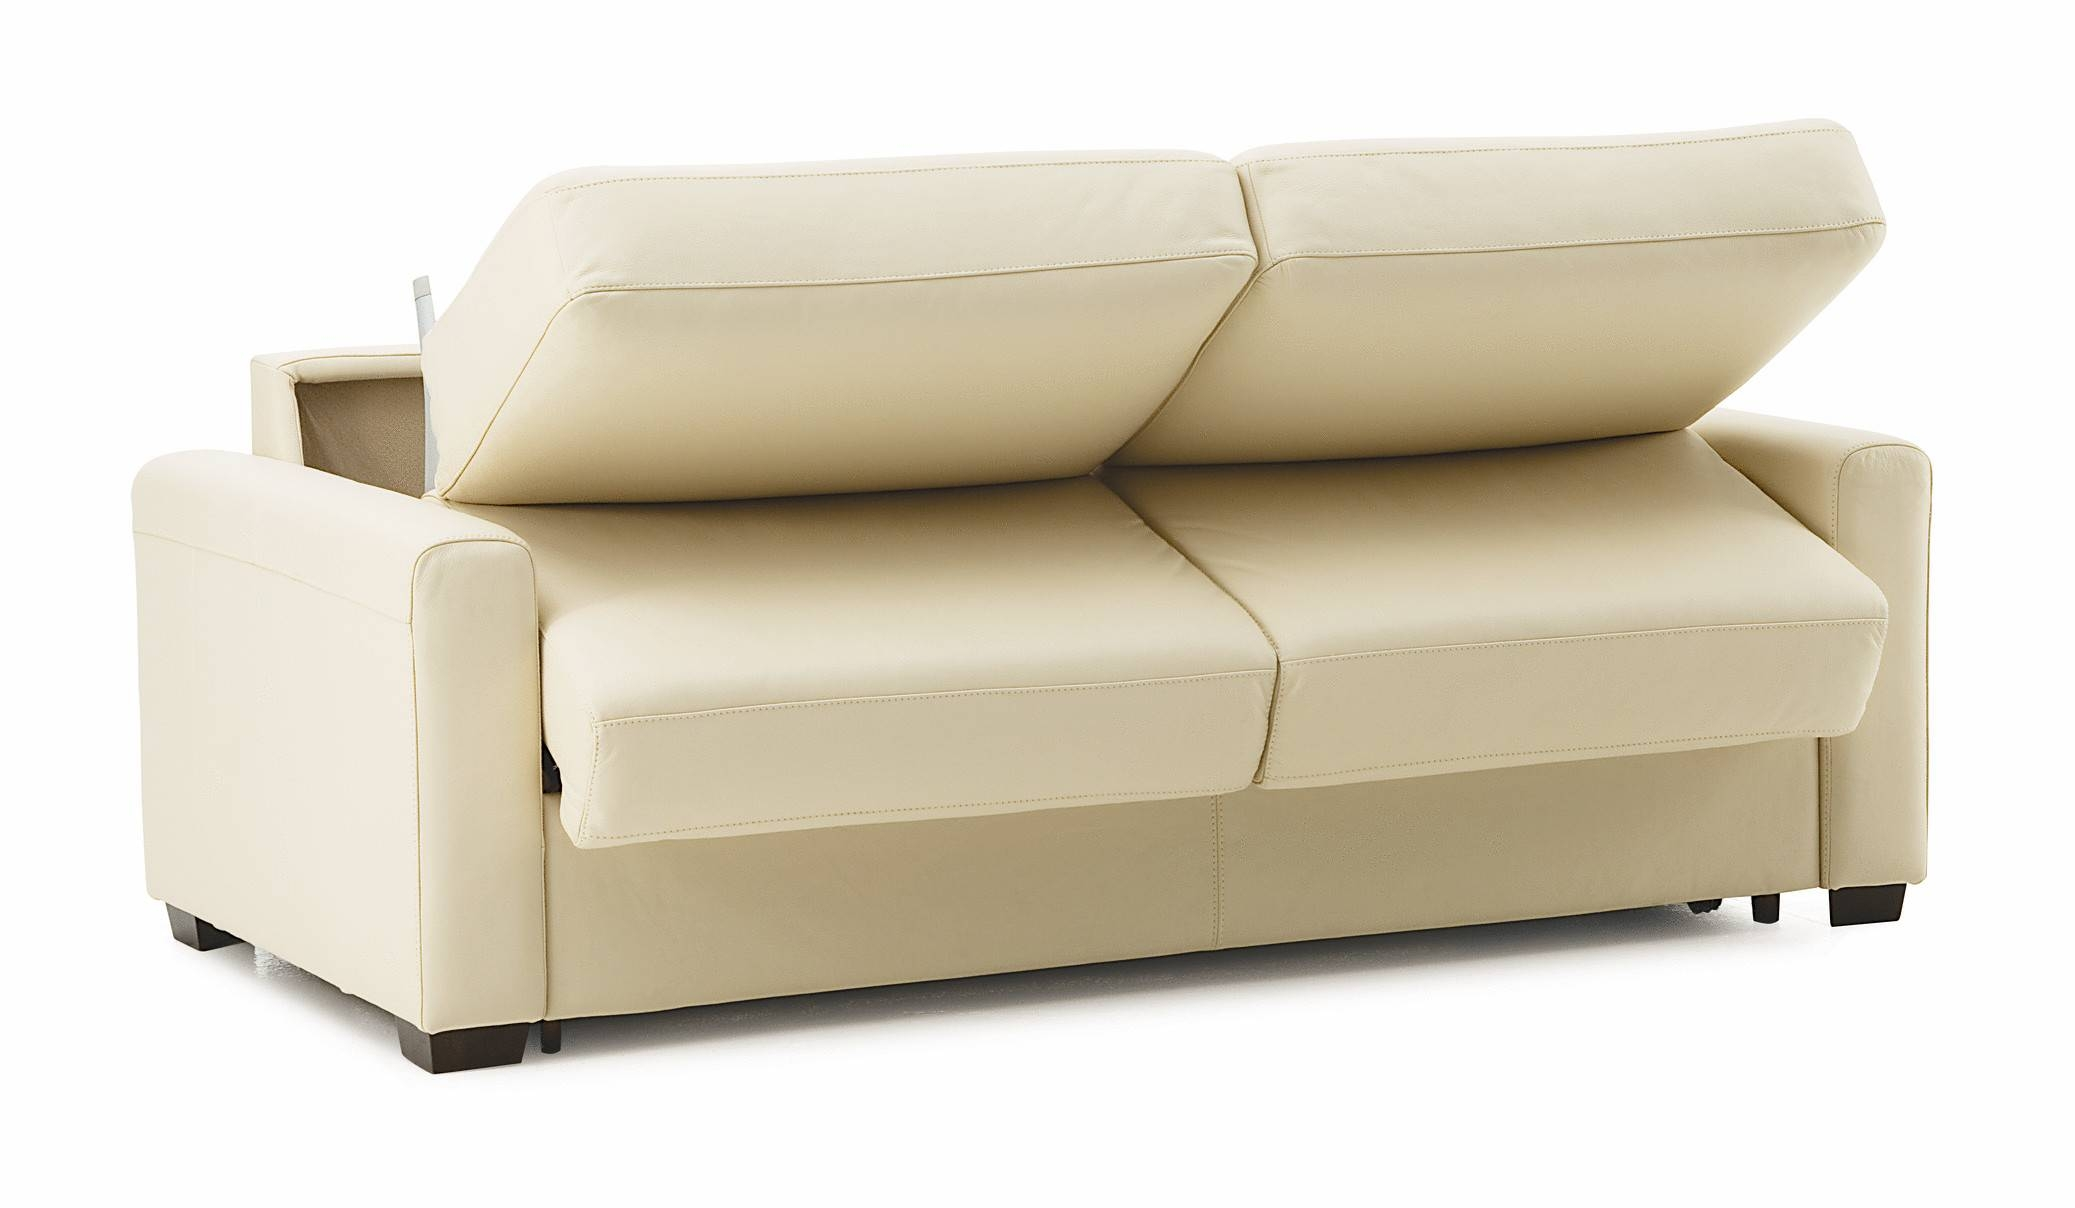 Best Double Sleeper sofa Beautiful